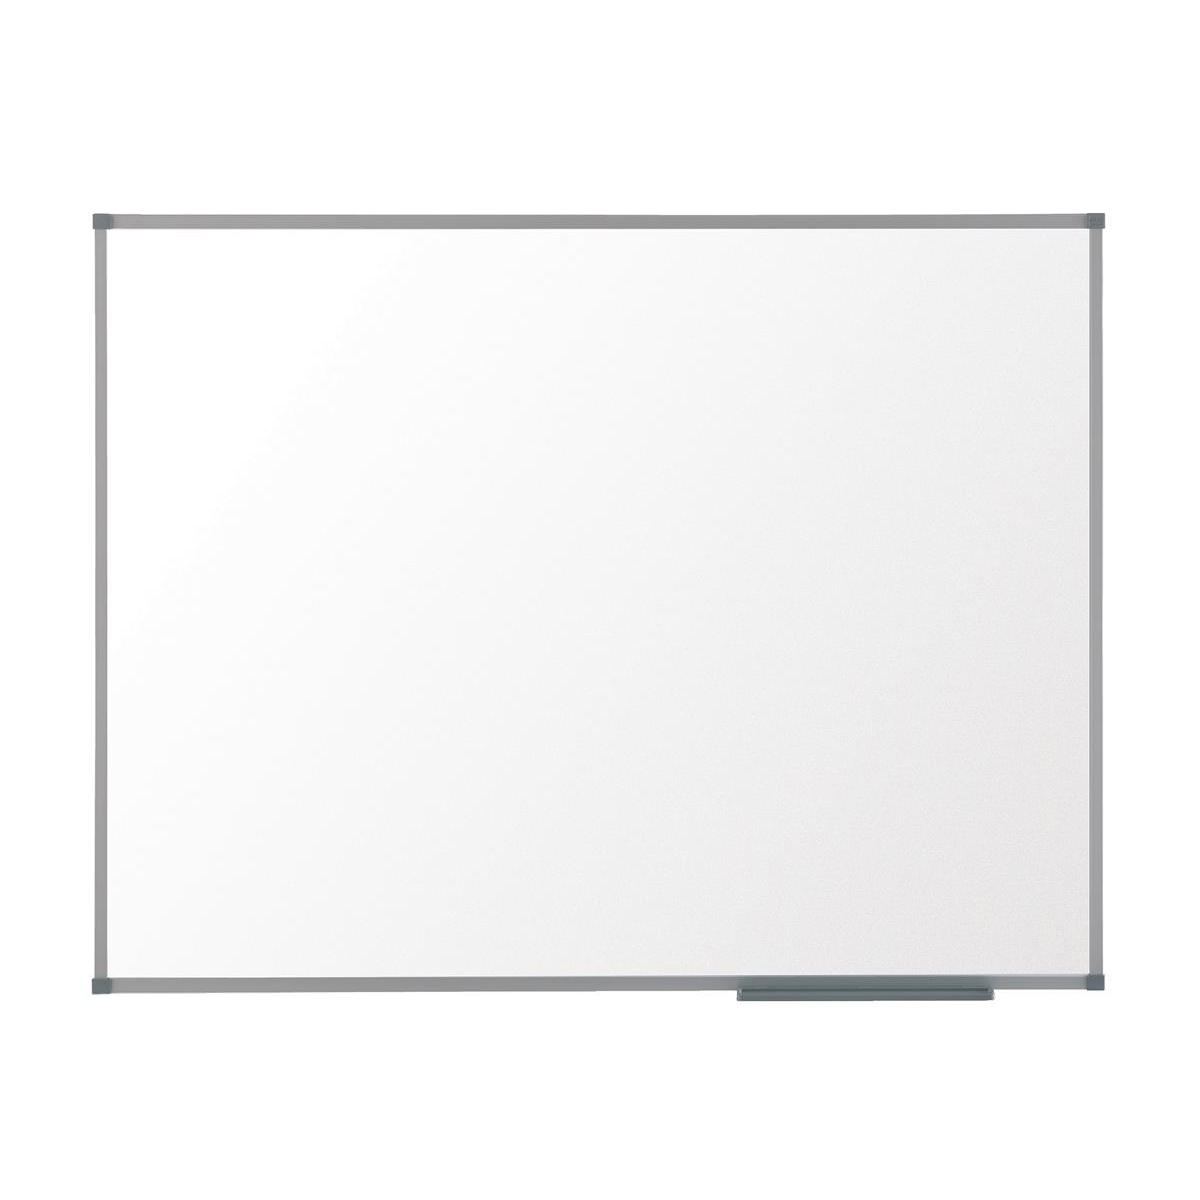 Nobo Basic Steel Whiteboard Magnetic Fixings Included W1500xH1000mm White Ref 1905212